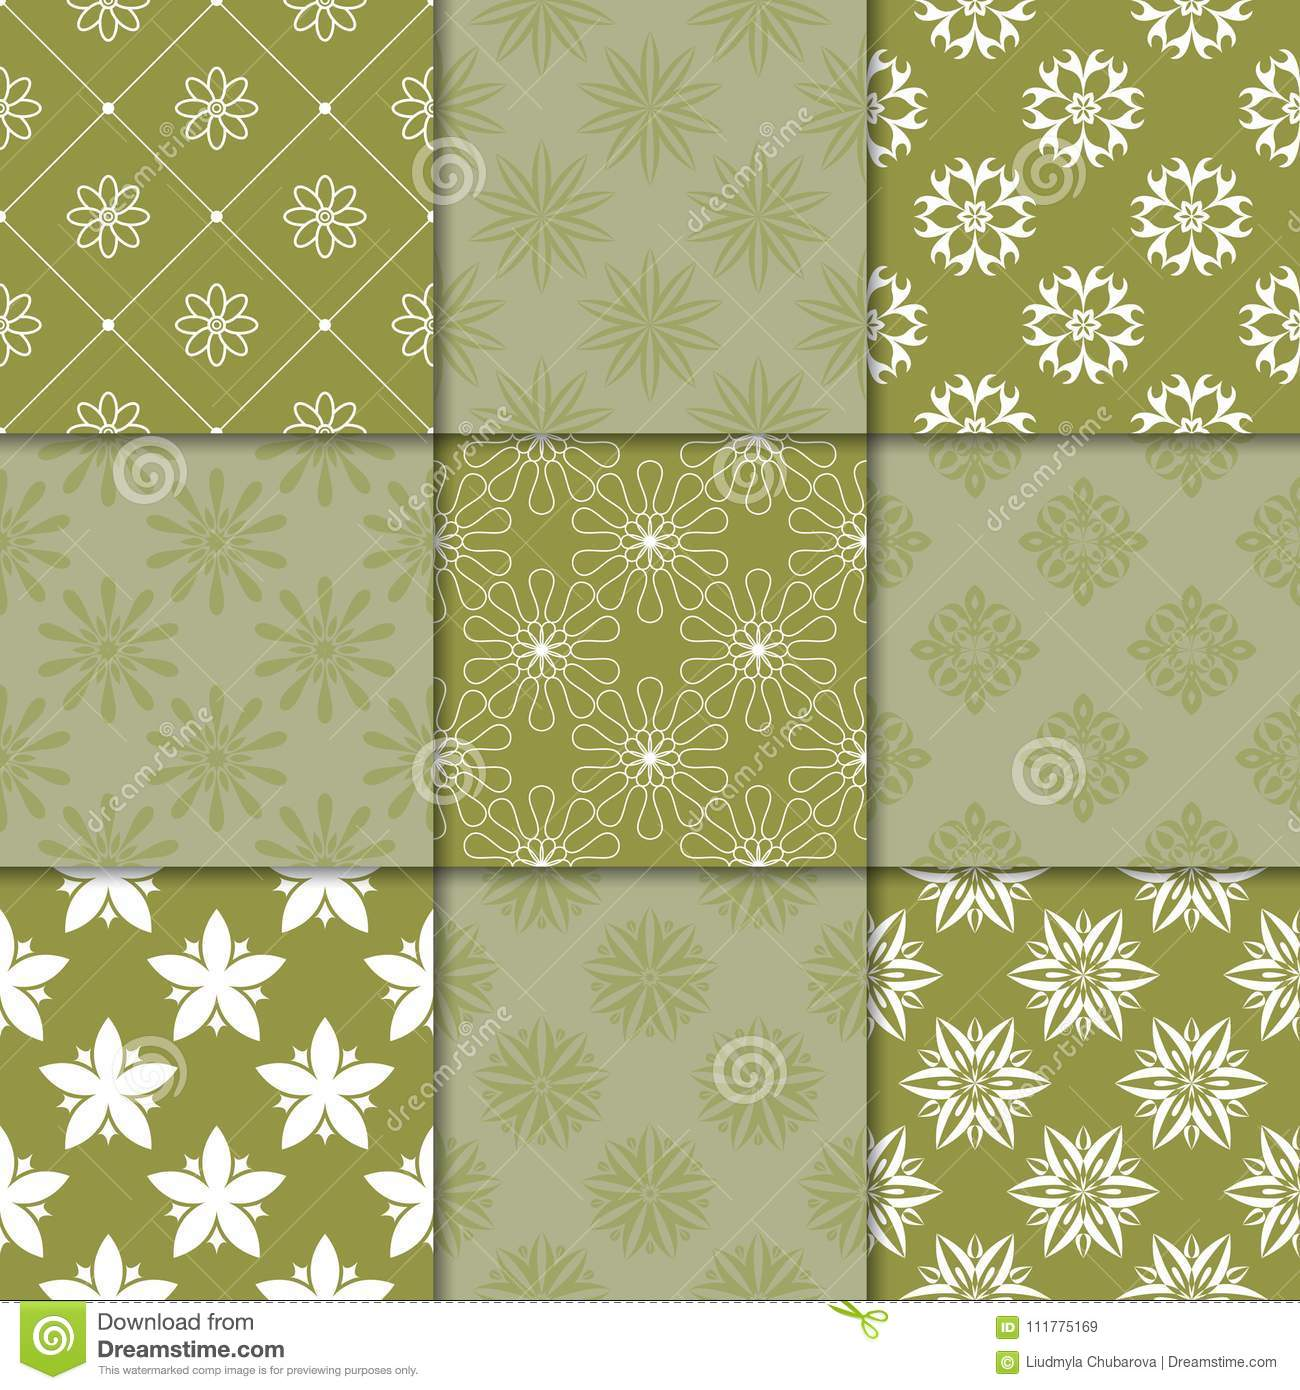 Olive green floral ornaments. Collection of seamless patterns